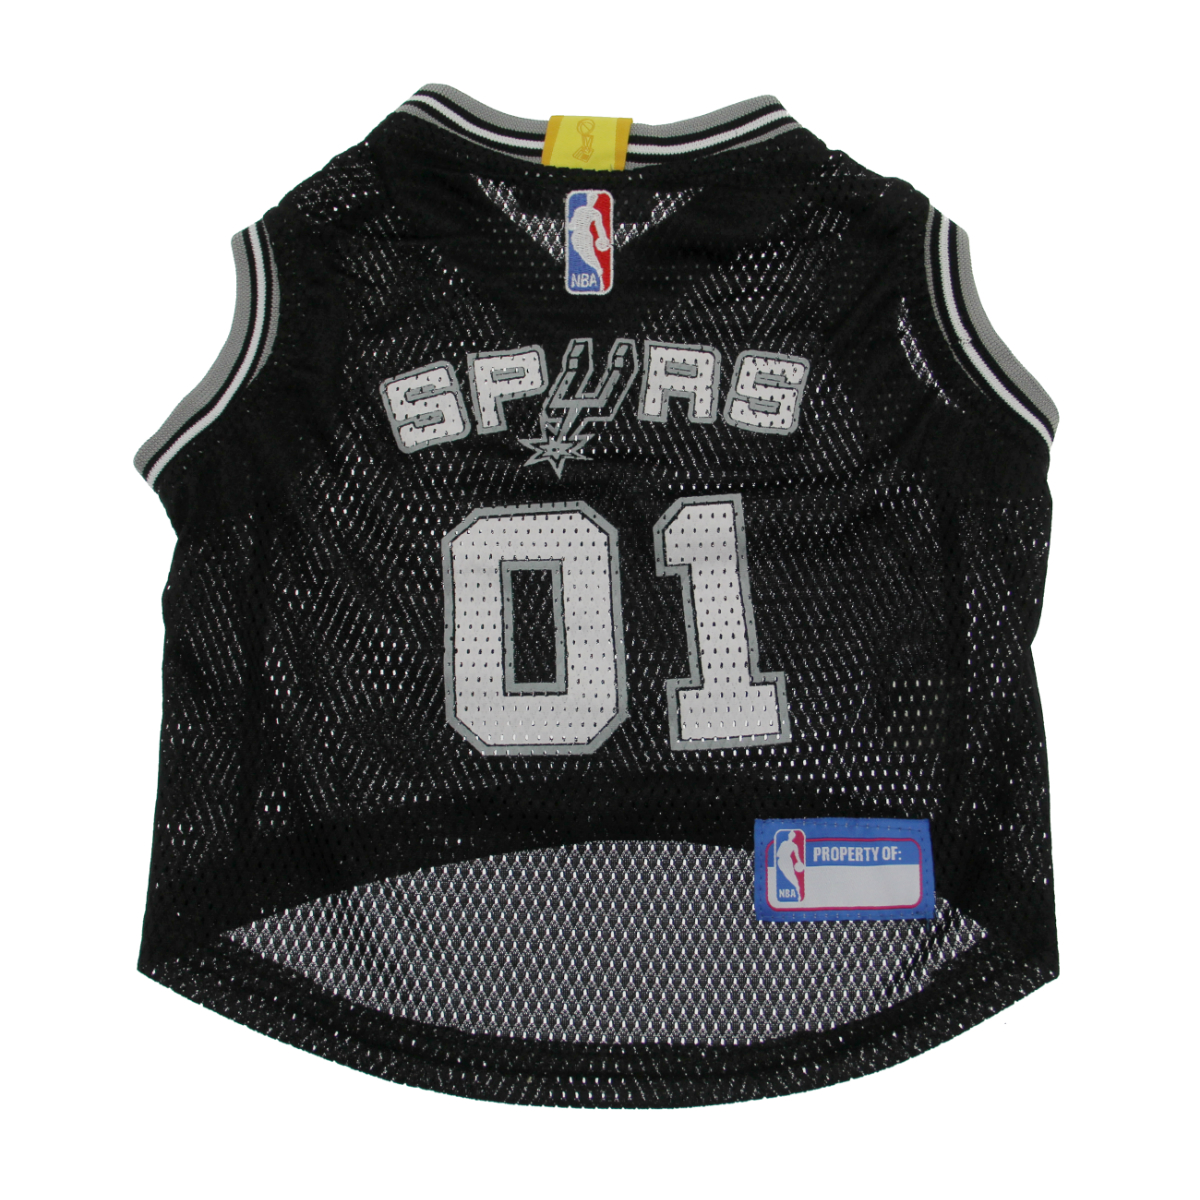 best sneakers 5b7f4 999a8 San Antonio Spurs Dog Jersey - Black